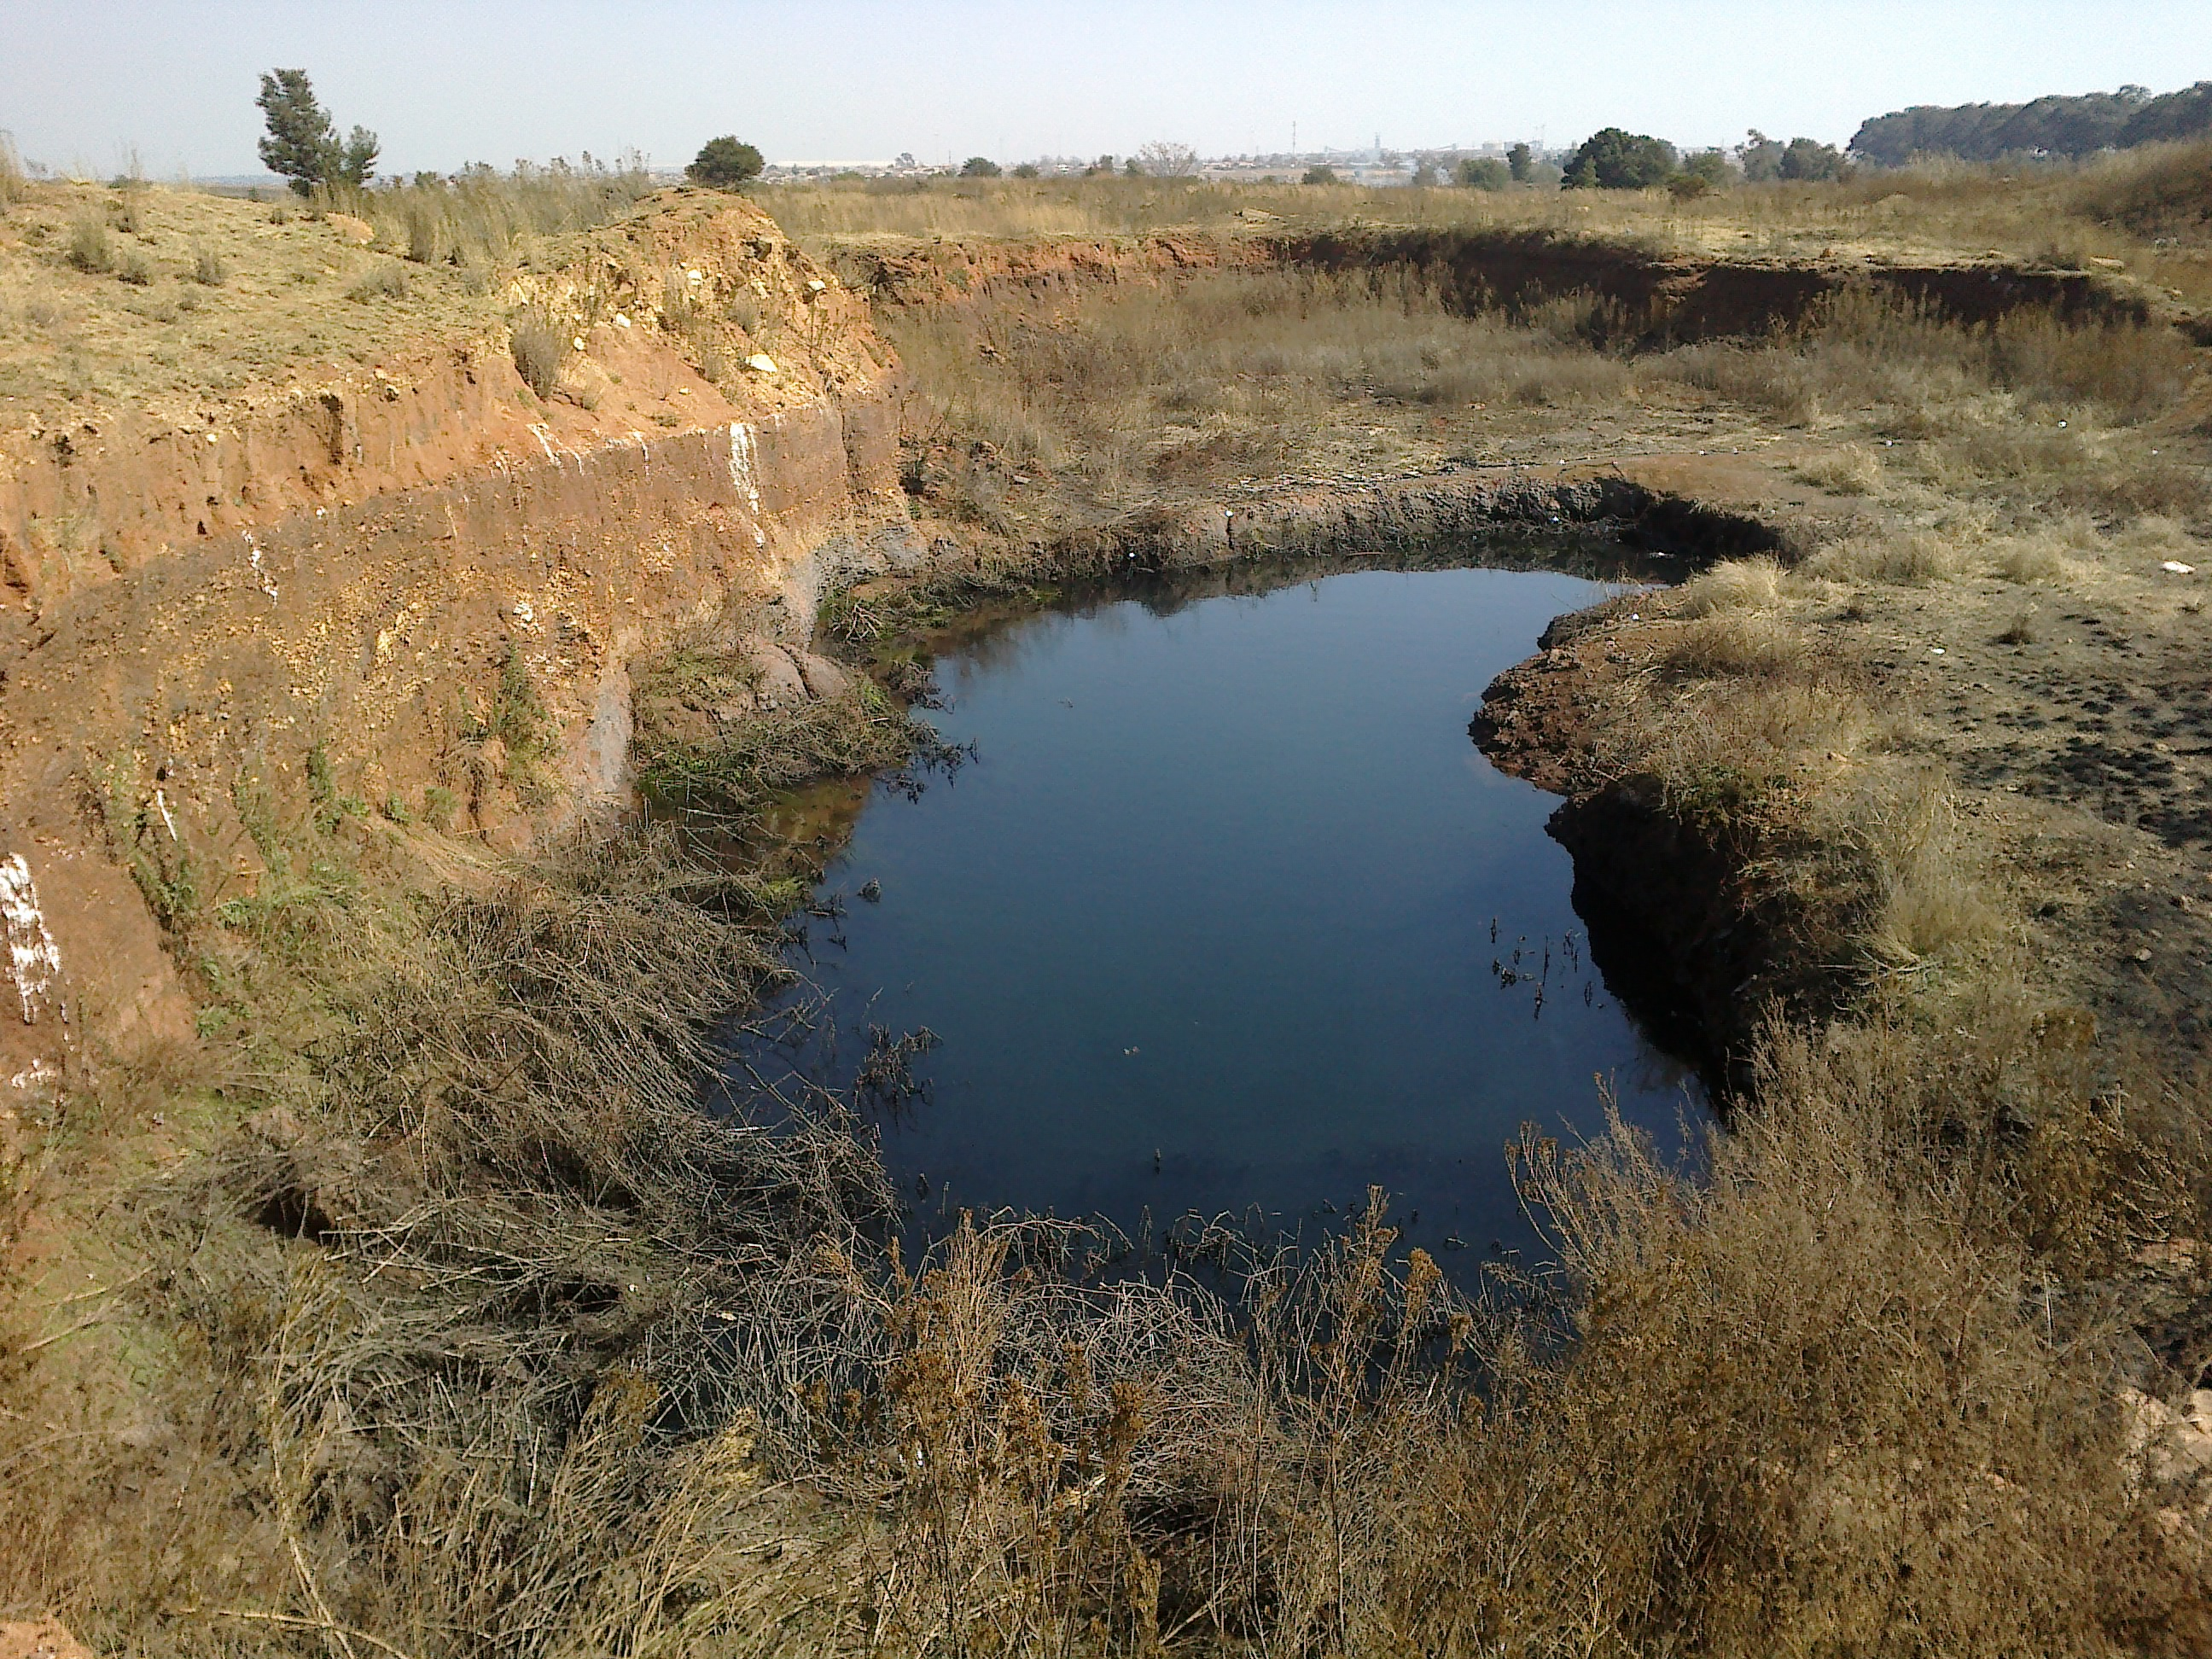 The ditch that two children drowned in near